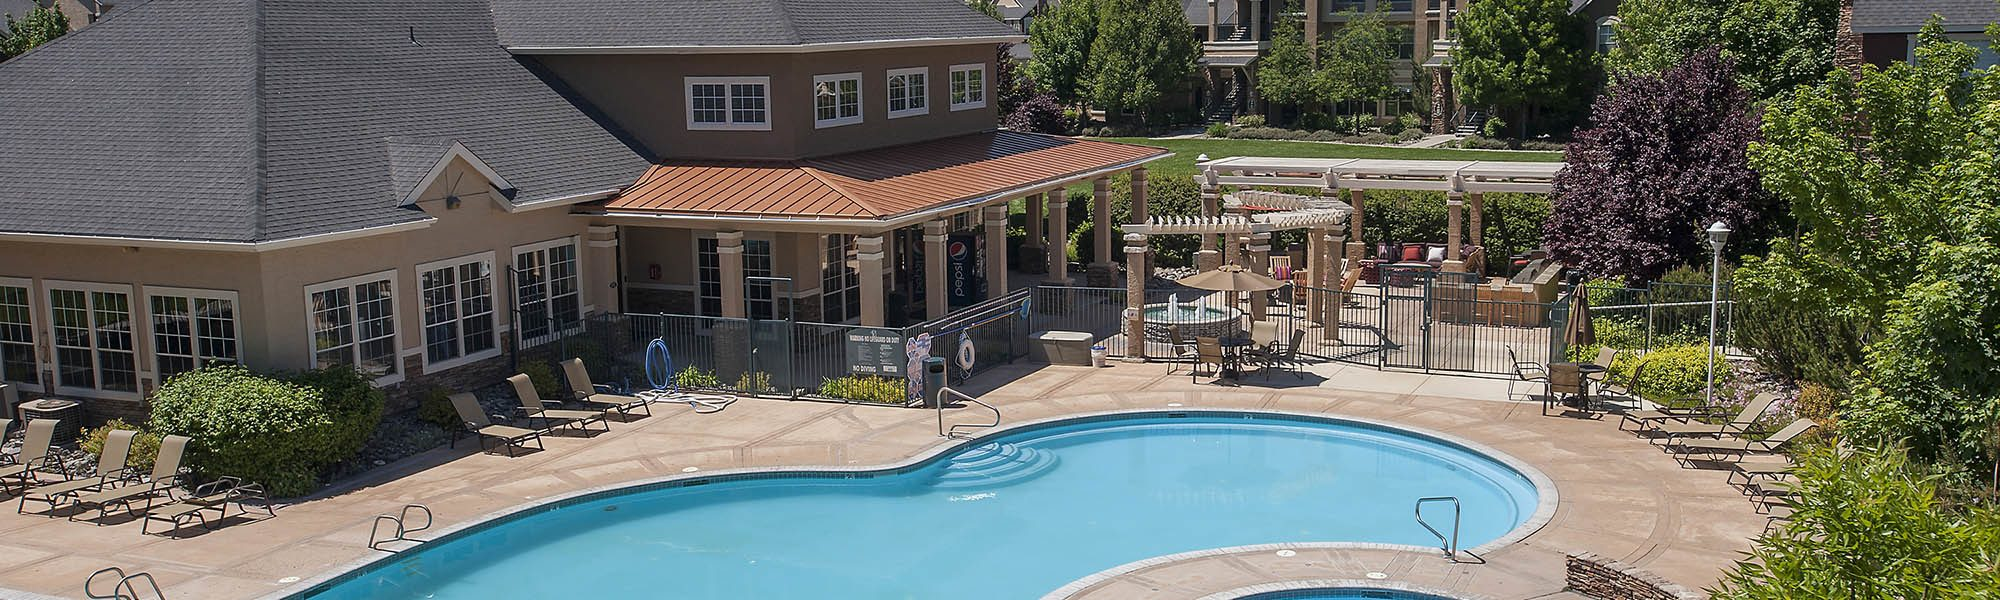 Read reviews of The Vintage at South Meadows Condominium Rentals on our website